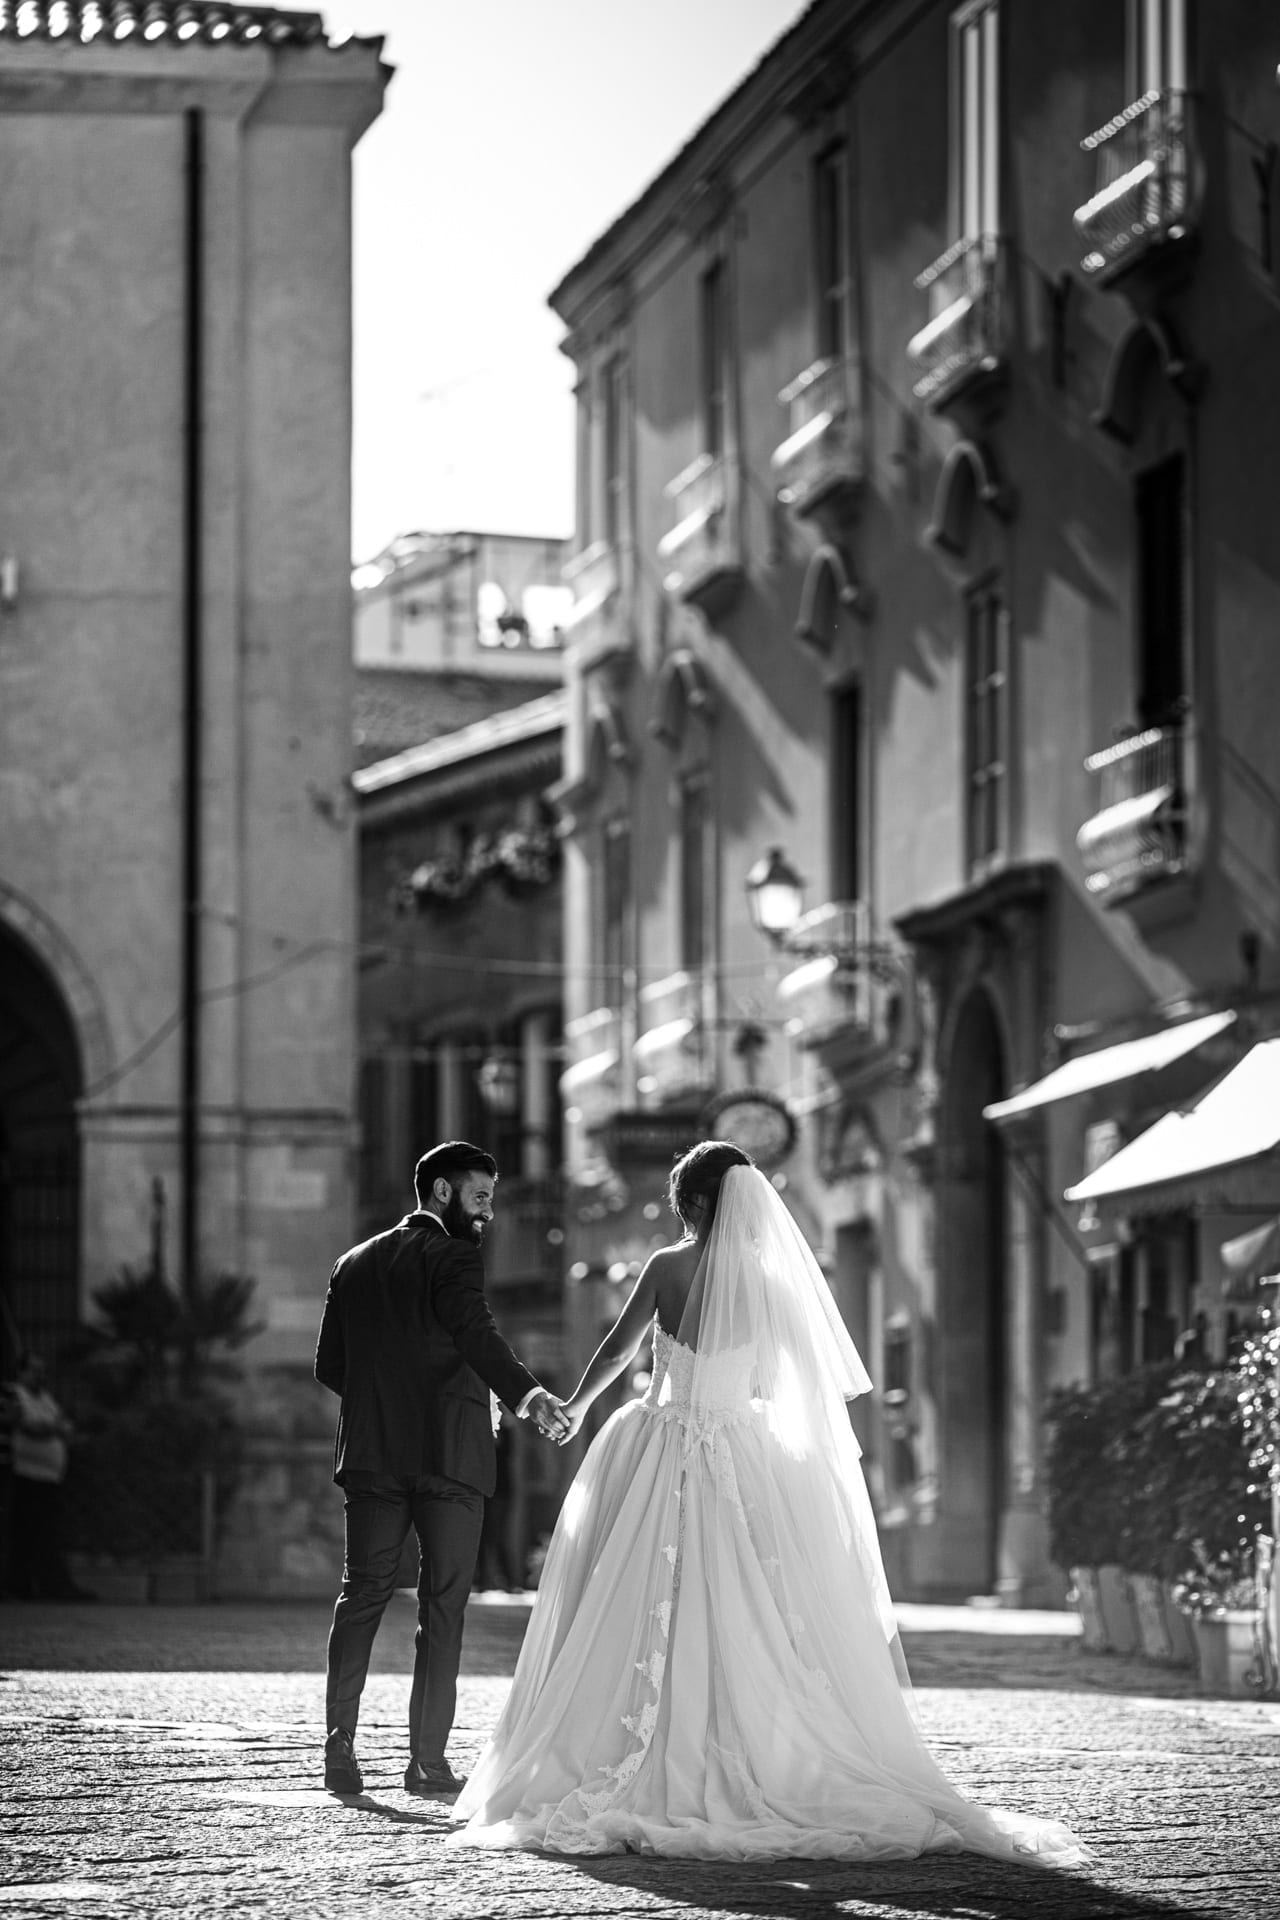 https://s3-eu-central-1.amazonaws.com/righiphotography-com/wp-content/uploads/2020/02/02183131/Wedding-Photo-No-Pose-Studio-Fotografico-Righi-RIGHI-104.jpg